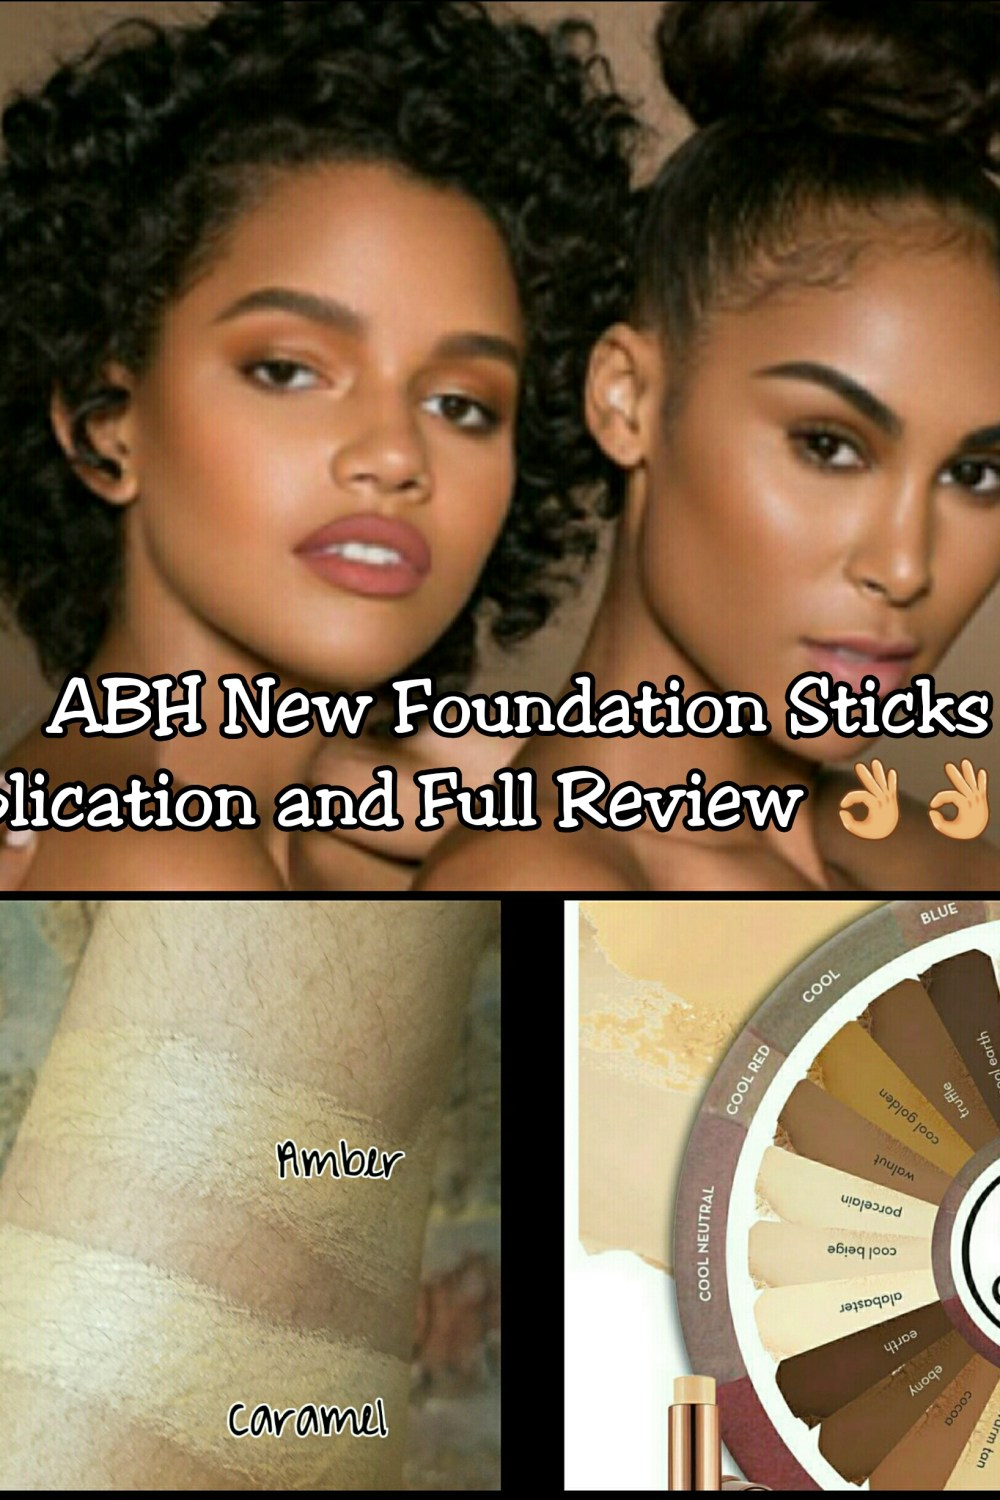 Full Review and Application of Anastasia Beverly Hills New Foundation Sticks in Amber and Caramel